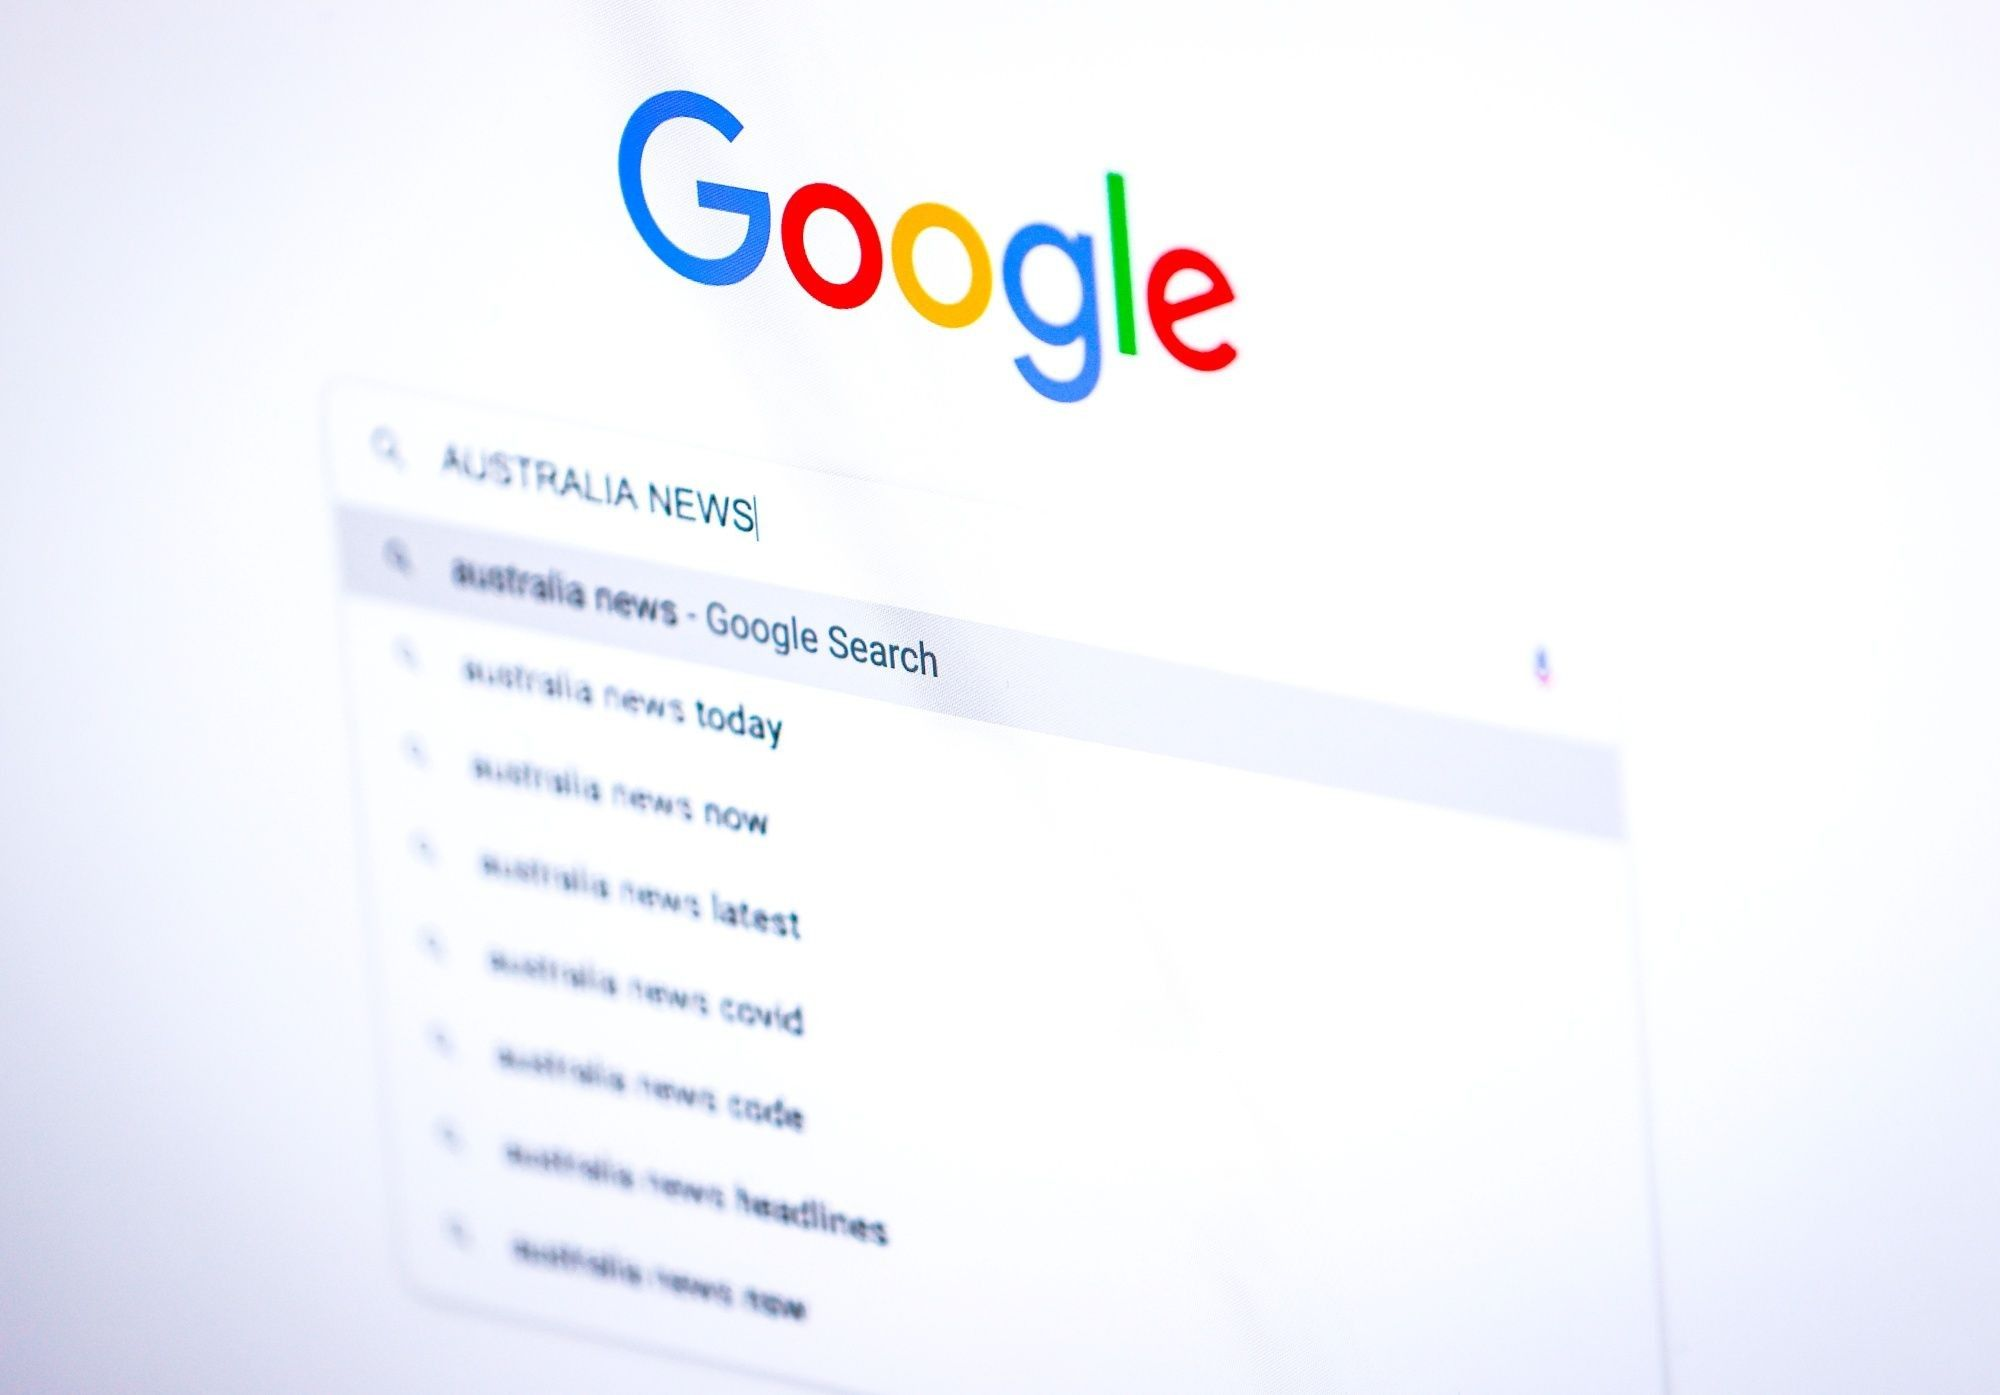 Google Threatens to Remove Search in Australia as Spat Escalates